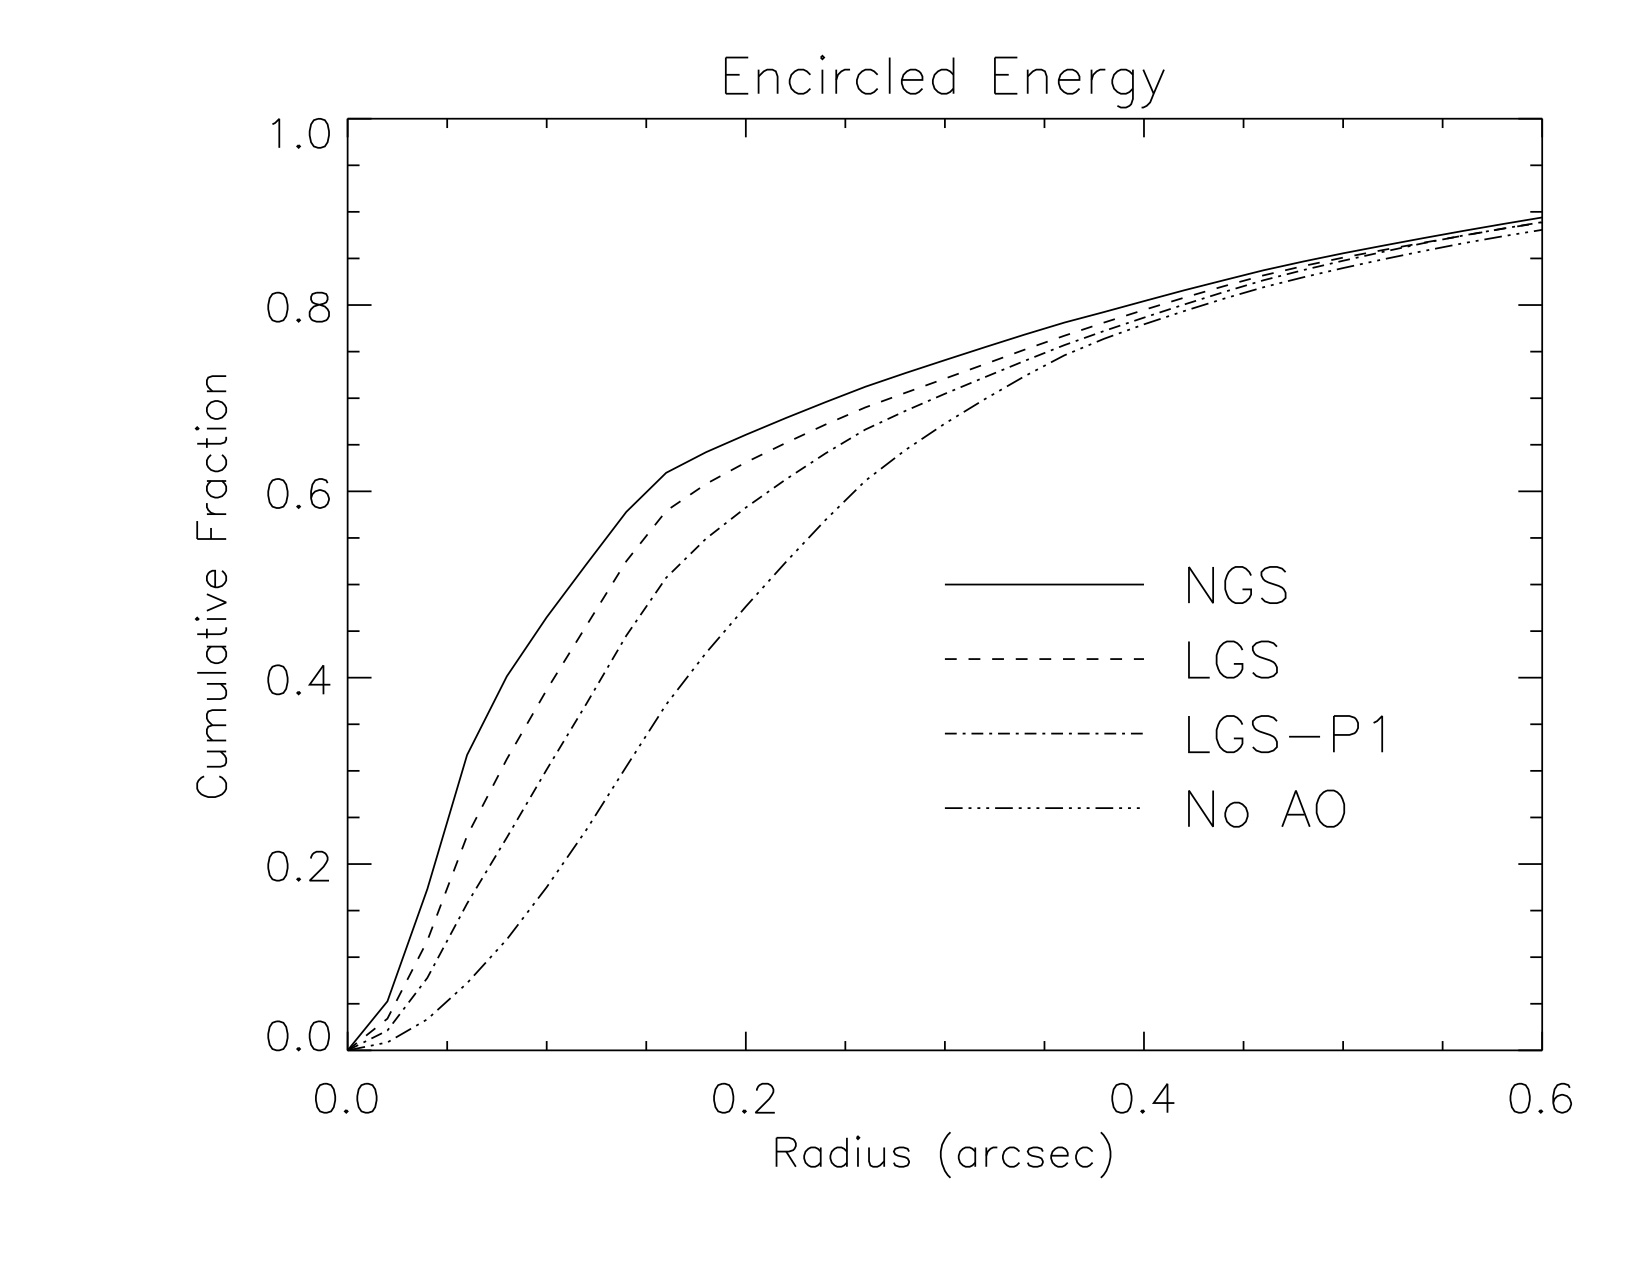 NIFS Encircled Energy